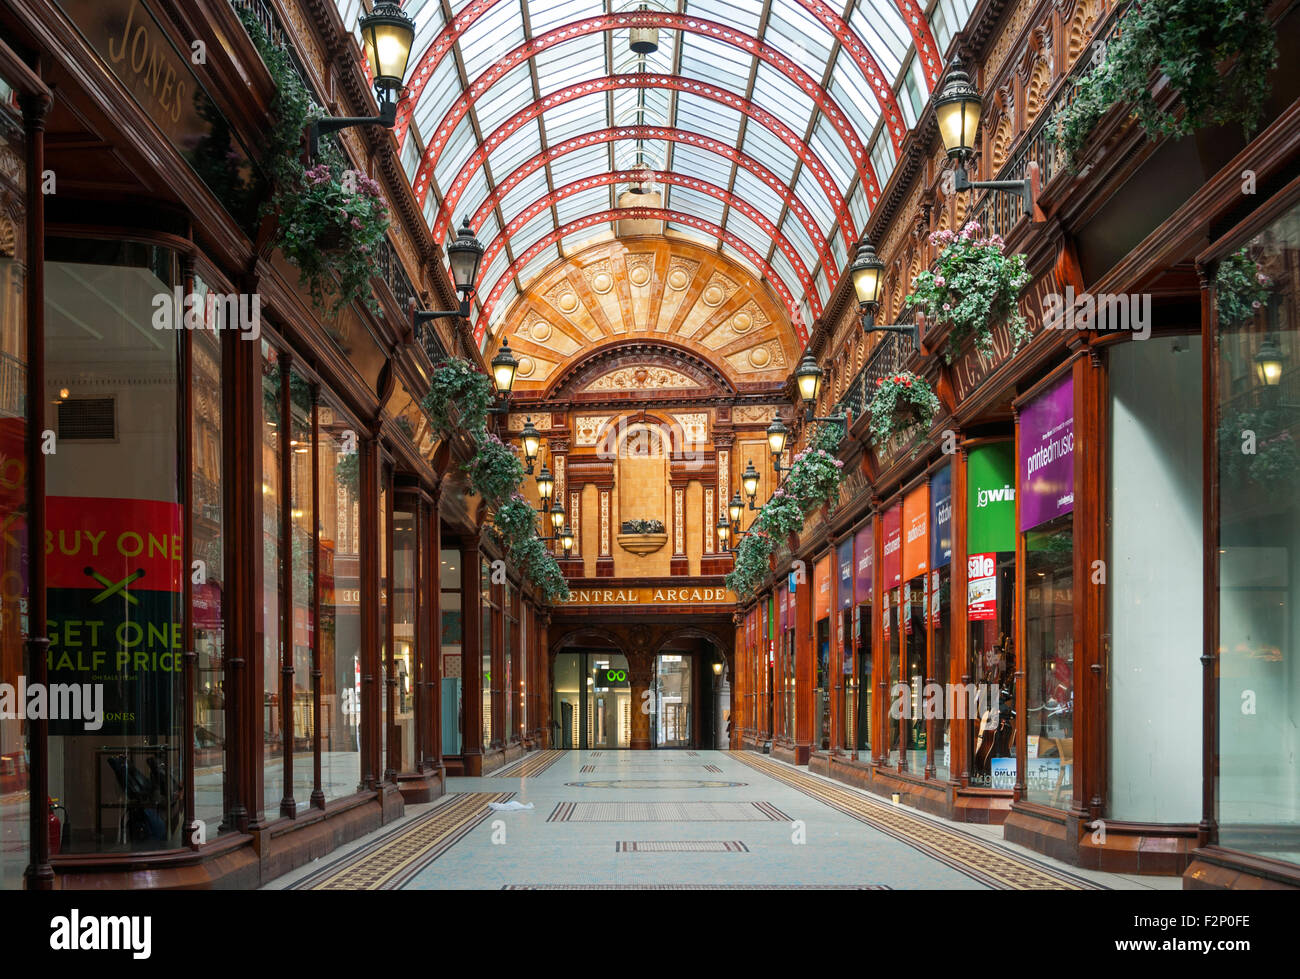 Central Arcade, an Edwardian (1906) shopping arcade in Newcastle upon Tyne, Tyne and Wear, England, UK - Stock Image